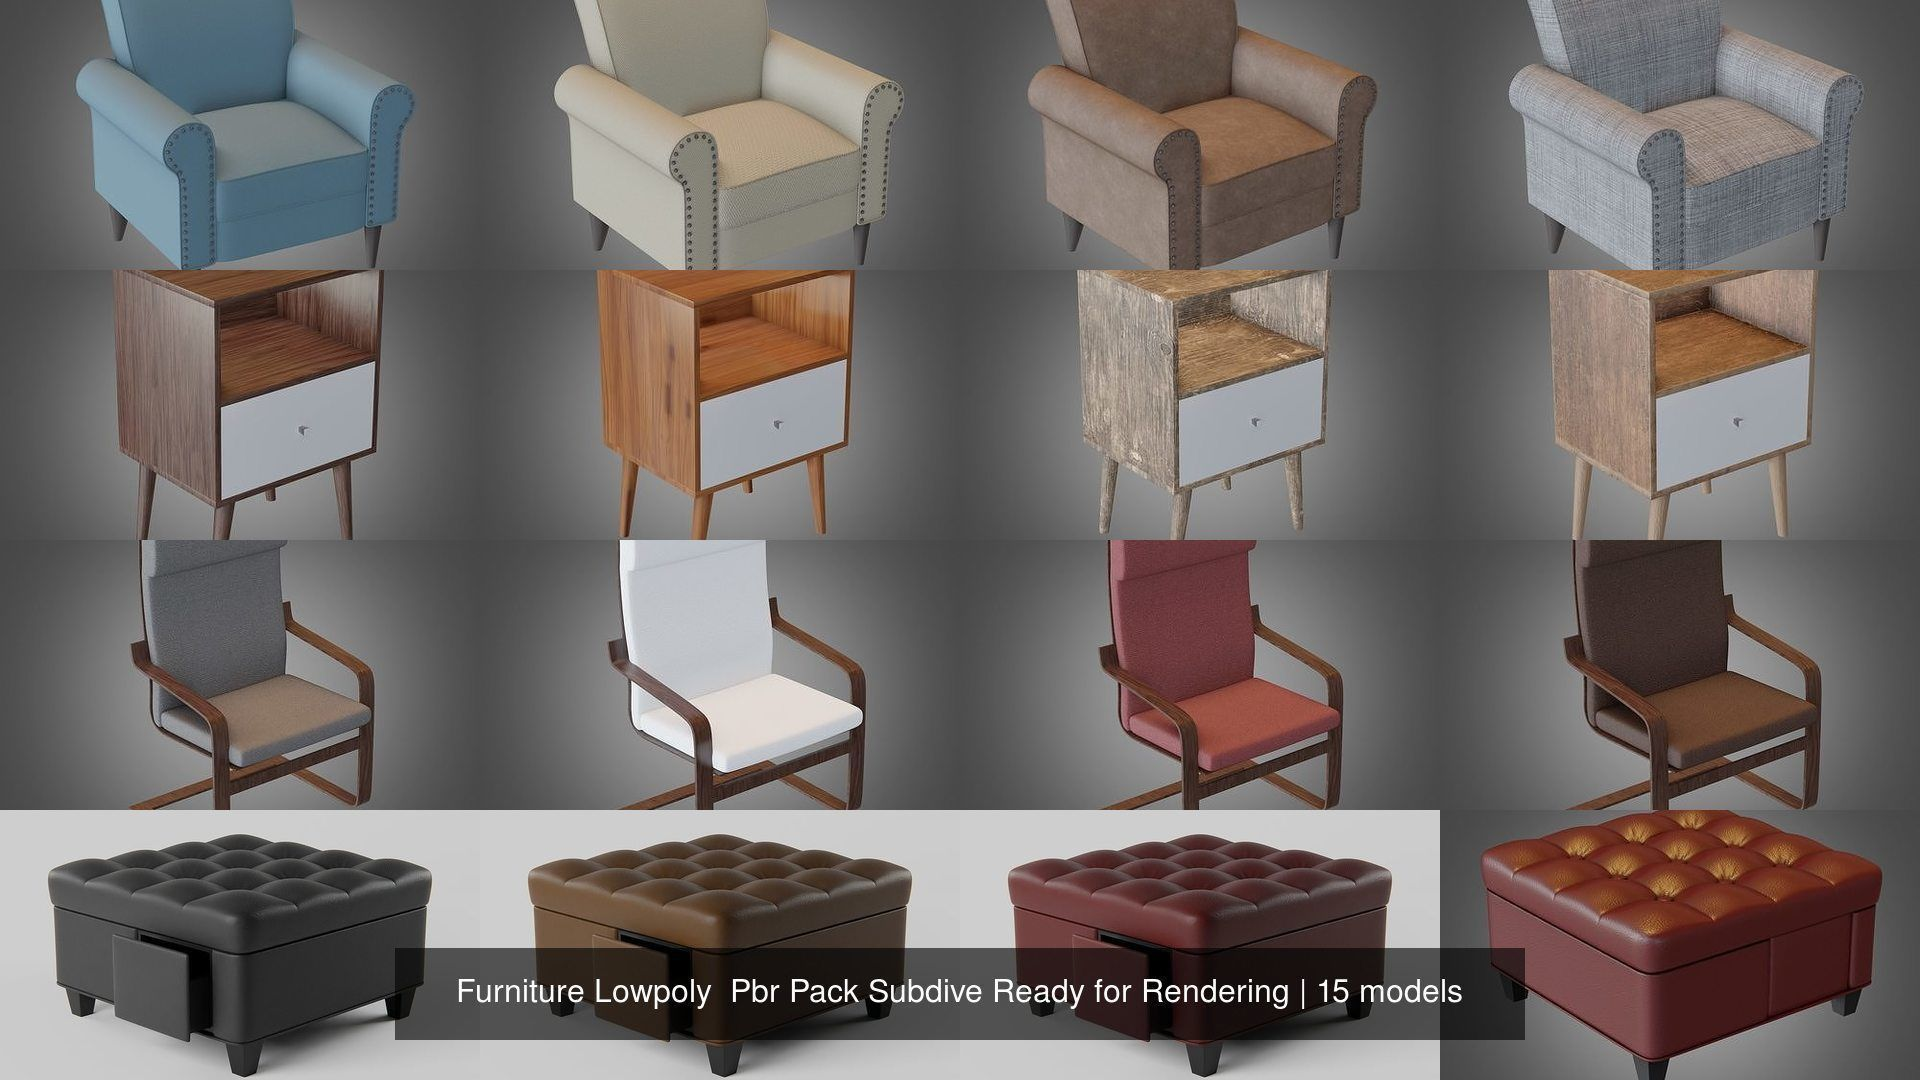 Furniture Lowpoly  Pbr Pack Subdive Ready for Rendering